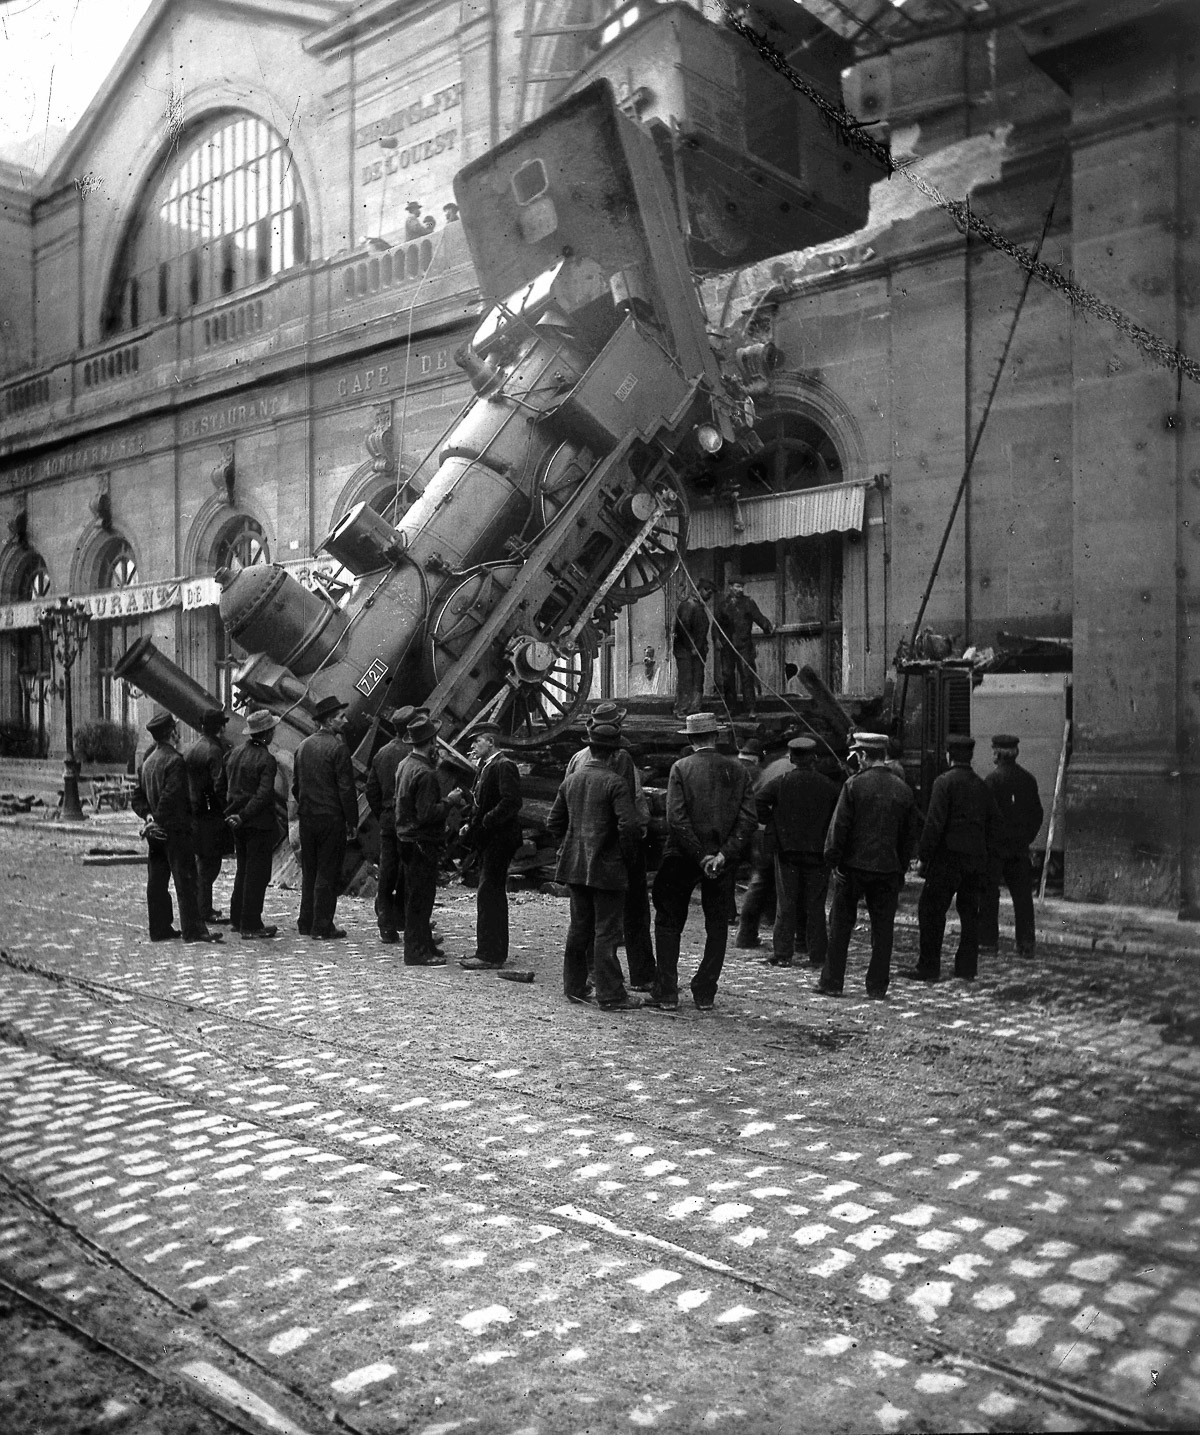 FRANCE - 1895:  Accident of the station Montparnasse. Paris, October 22, 1895. LL-21813.  (Photo by LL/Roger Viollet/Getty Images)